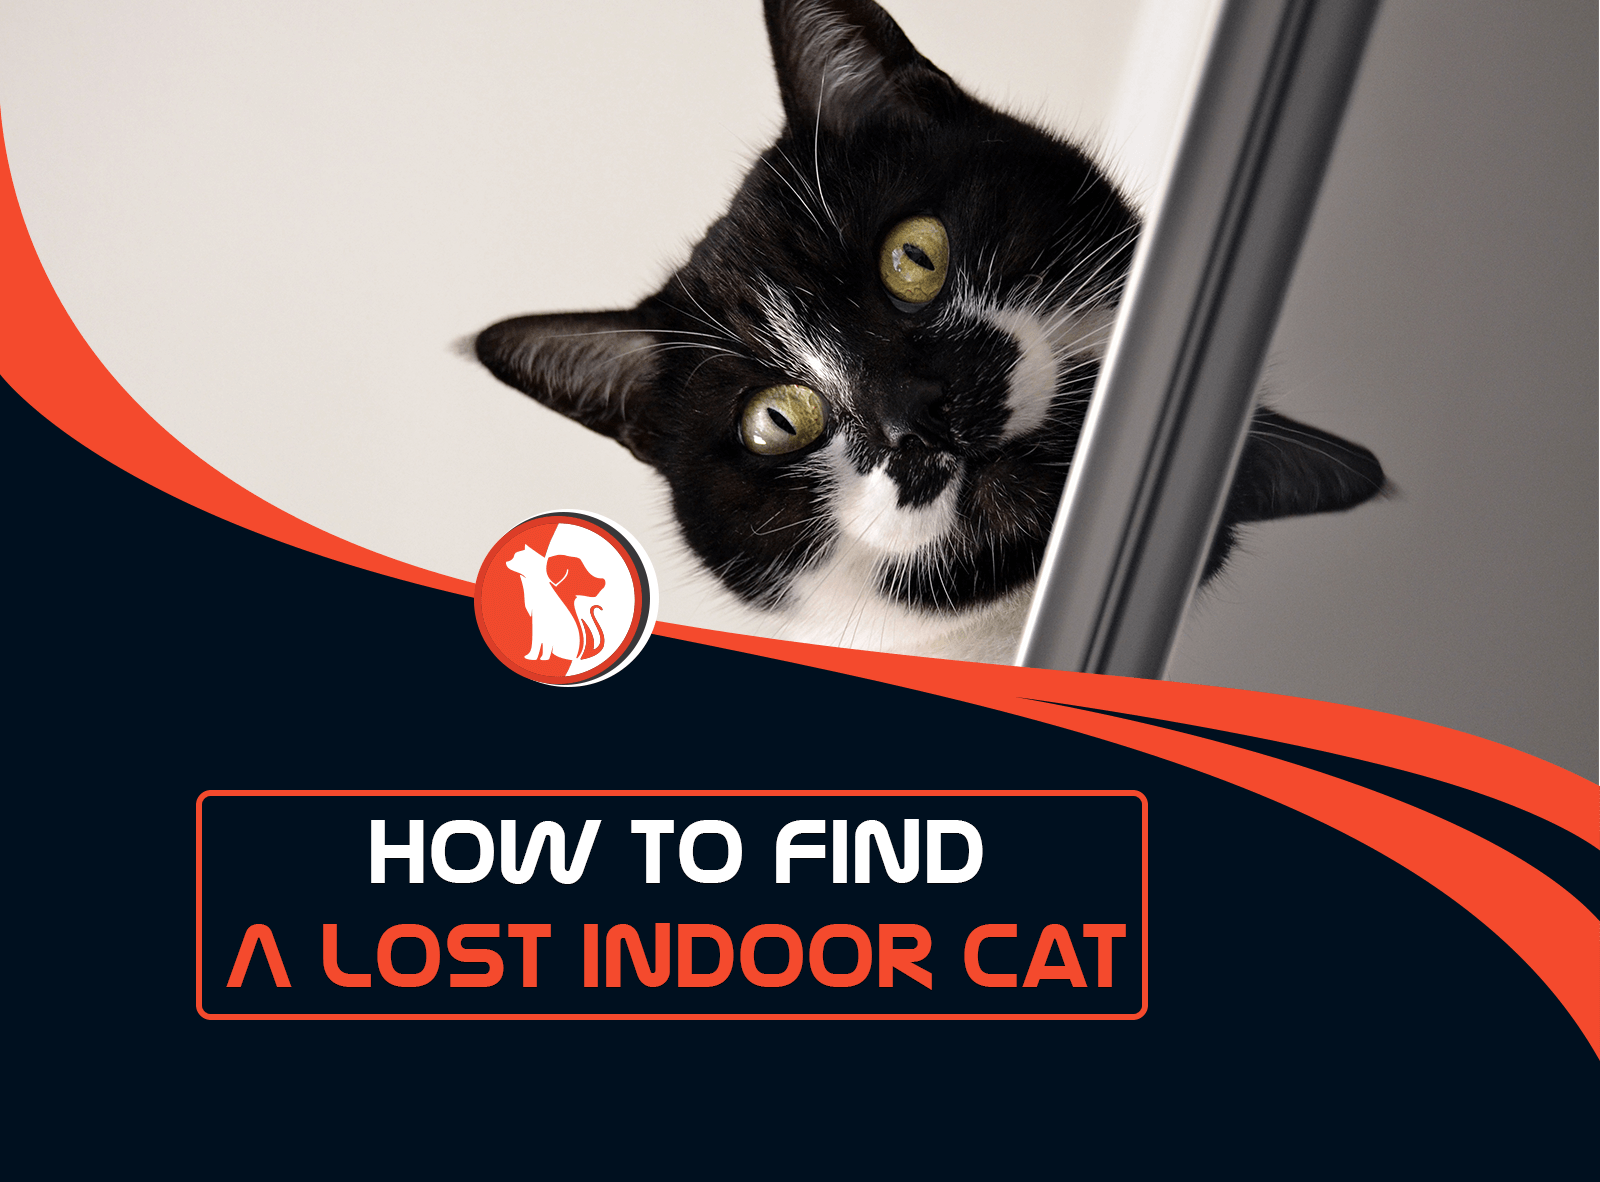 How to Find a Lost Indoor Cat